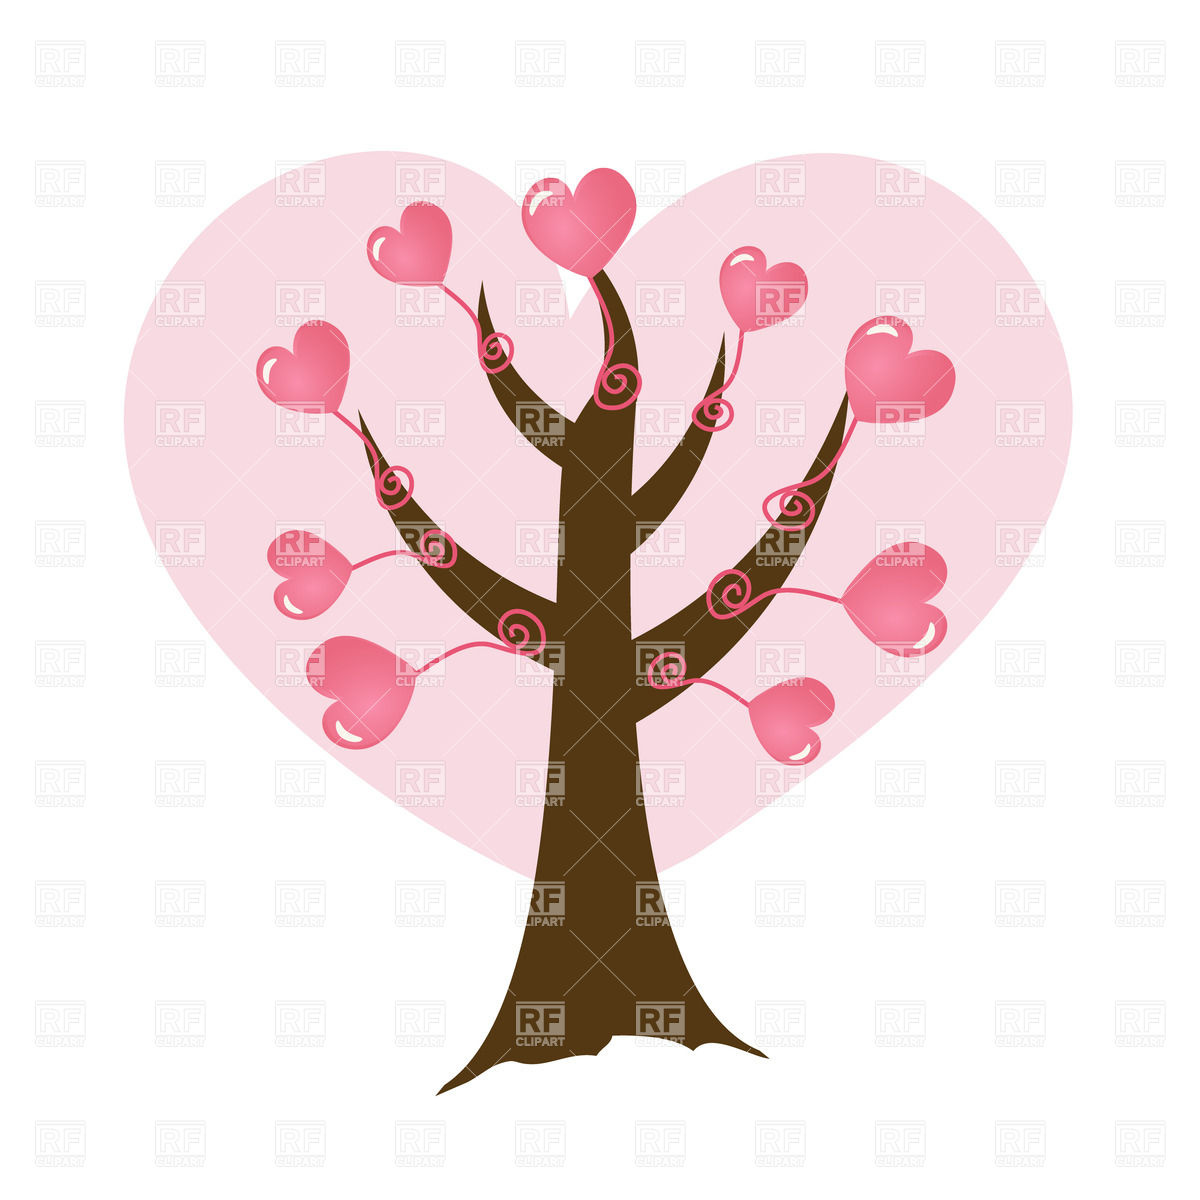 1200x1200 Abstract Cartoon Tree With Heart Look Foliage Royalty Free Vector